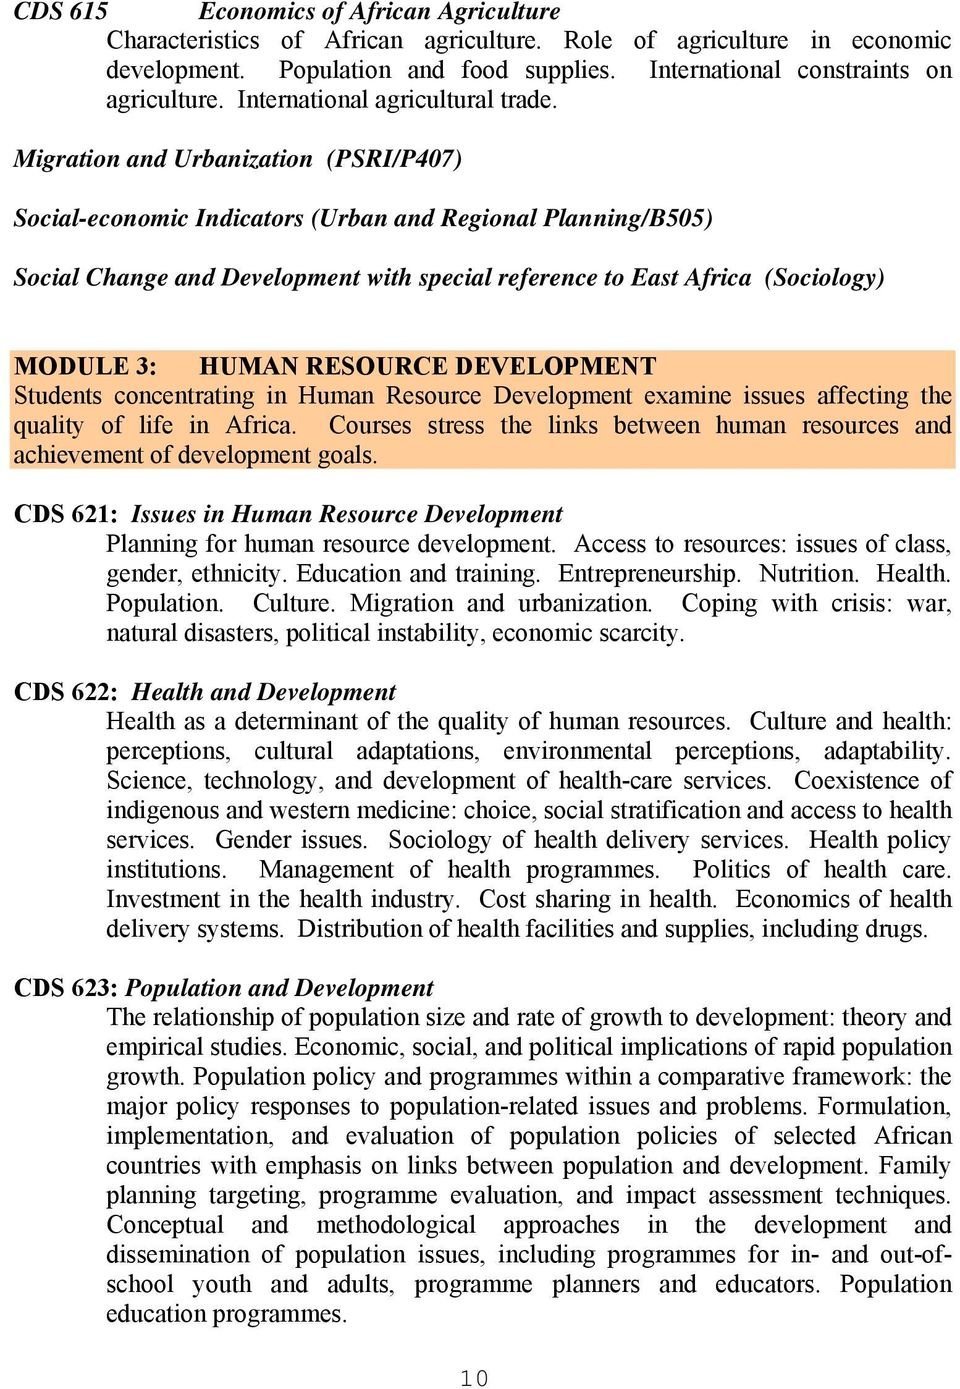 Migration and Urbanization (PSRI/P407) Social-economic Indicators (Urban and Regional Planning/B505) Social Change and Development with special reference to East Africa (Sociology) MODULE 3: HUMAN